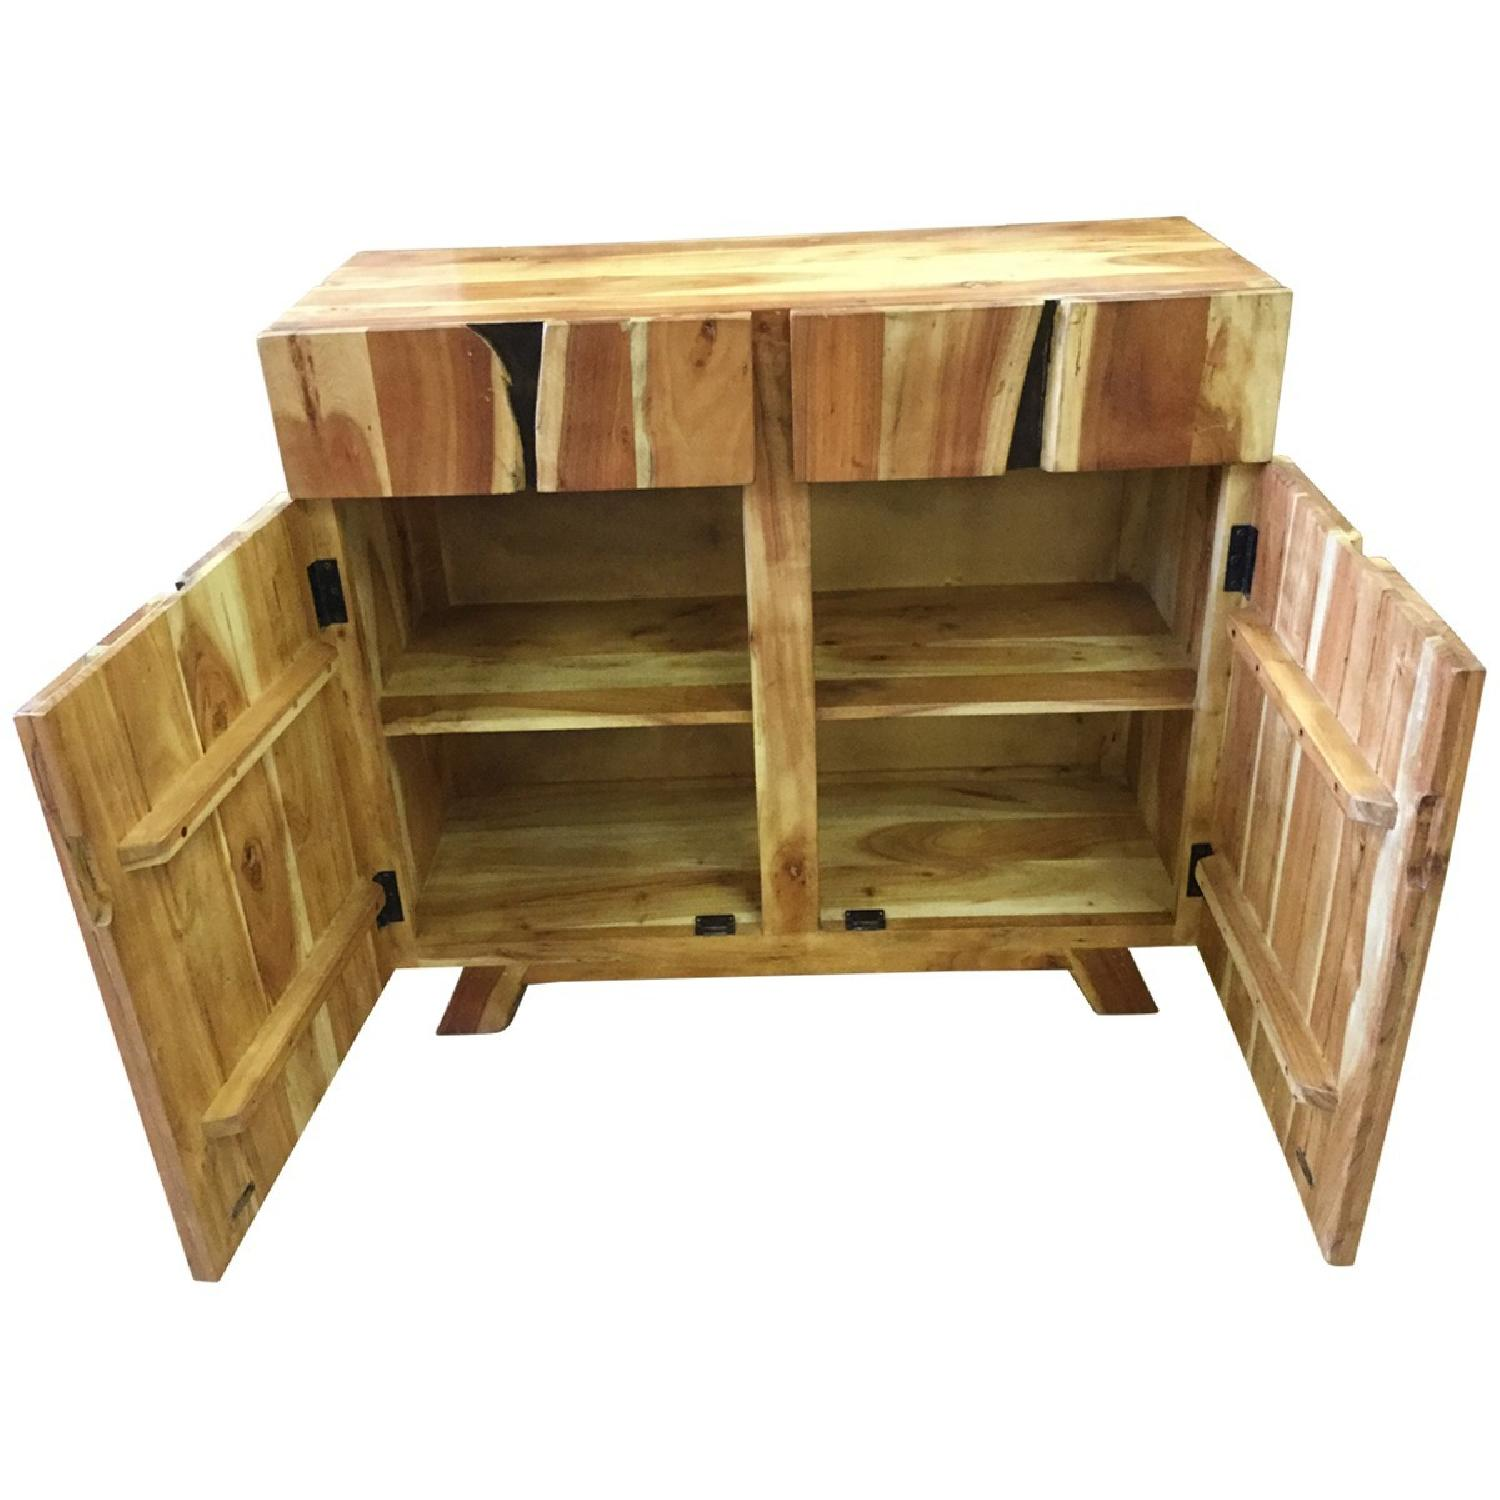 Wooden 2 Drawers Sideboard - image-2